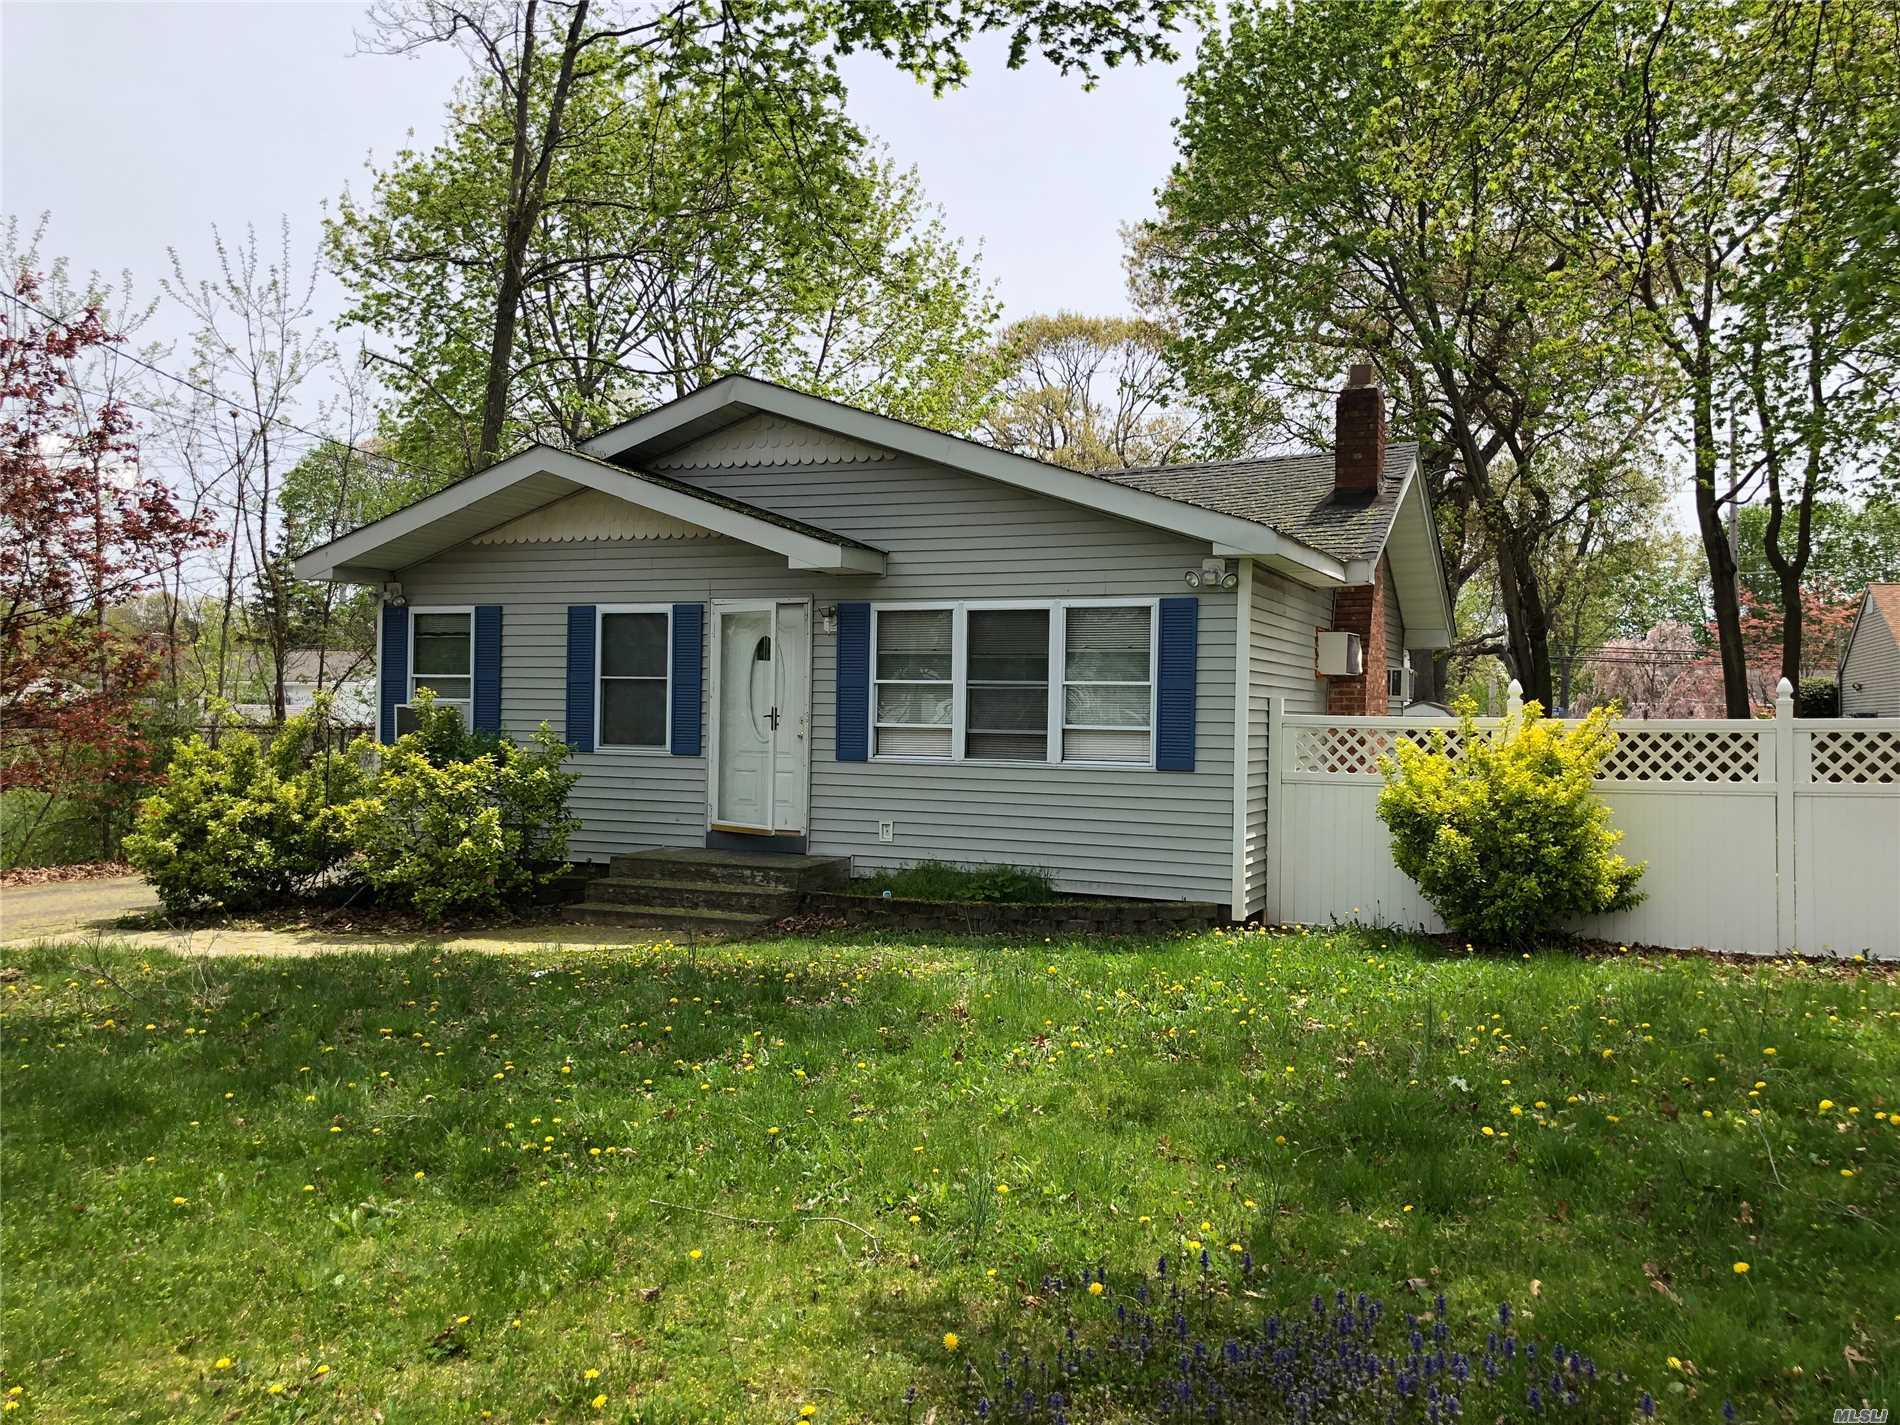 Photo of home for sale at 74 Weichers Ave, Ronkonkoma NY